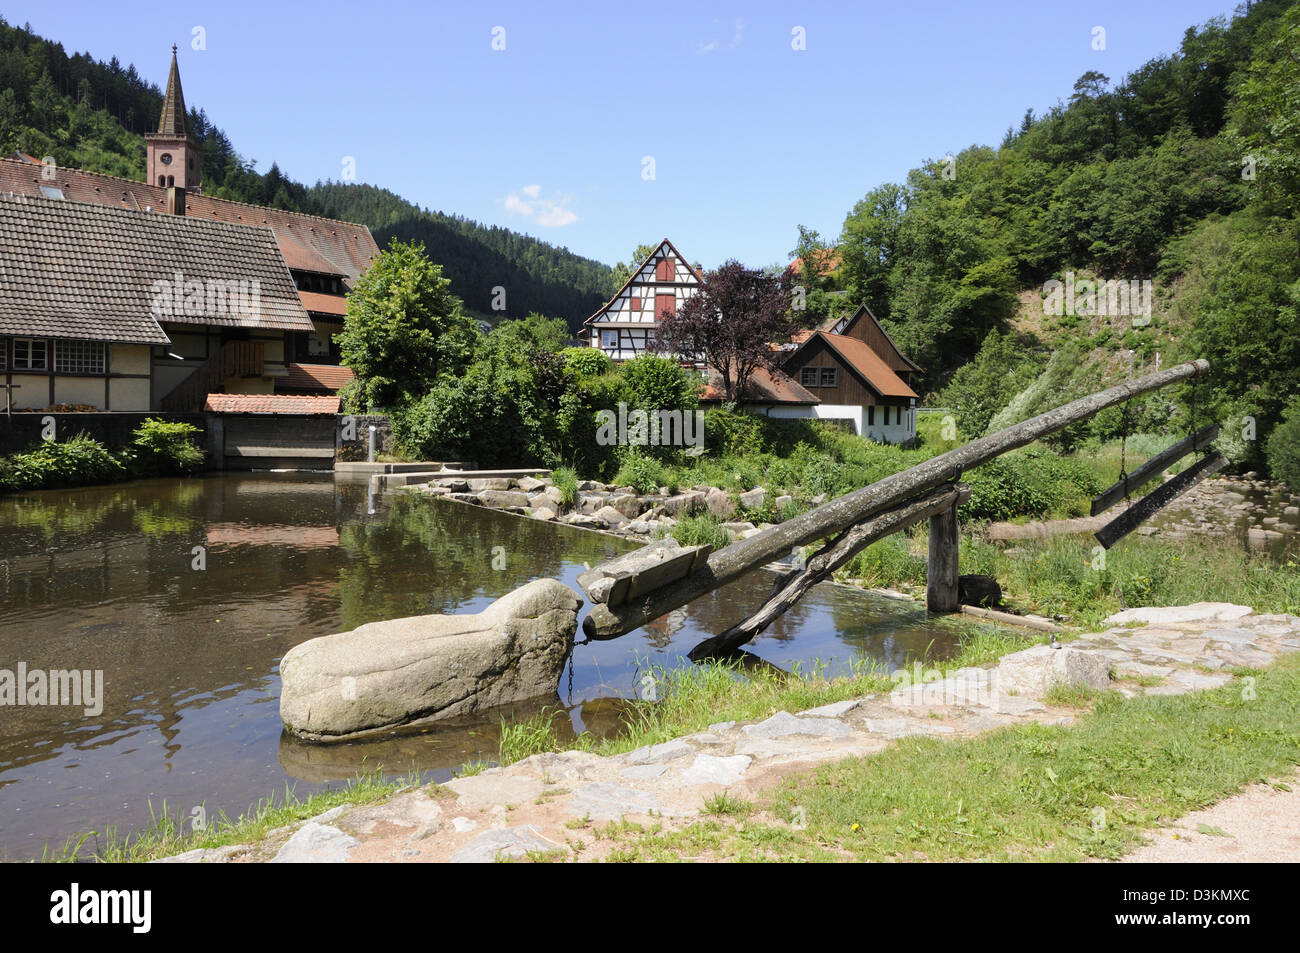 The weir on the river Kinzig, Schiltach, Black Forest, Germany. - Stock Image